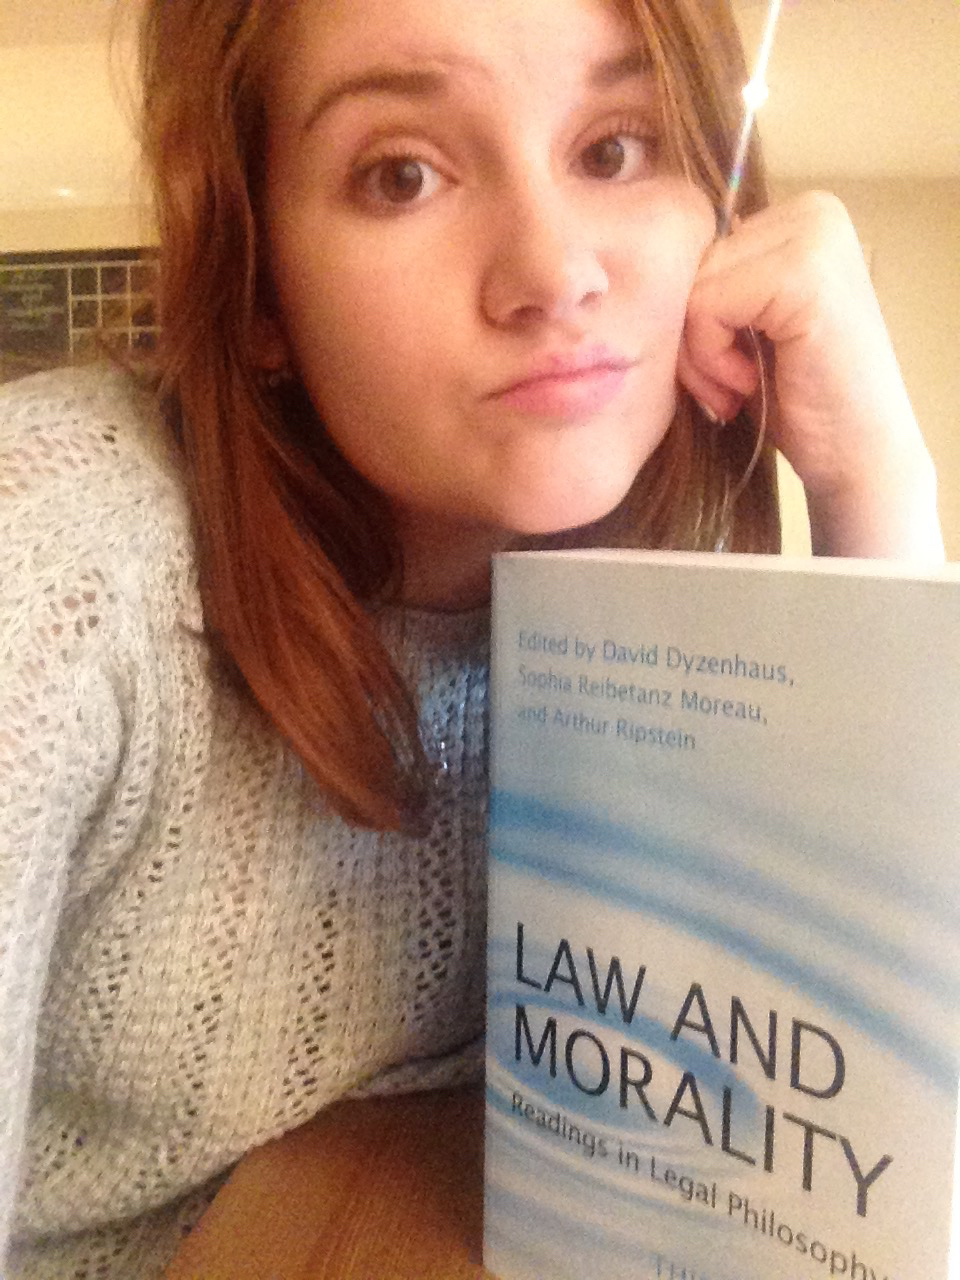 Madeline making a grumpy face next to a textbook.